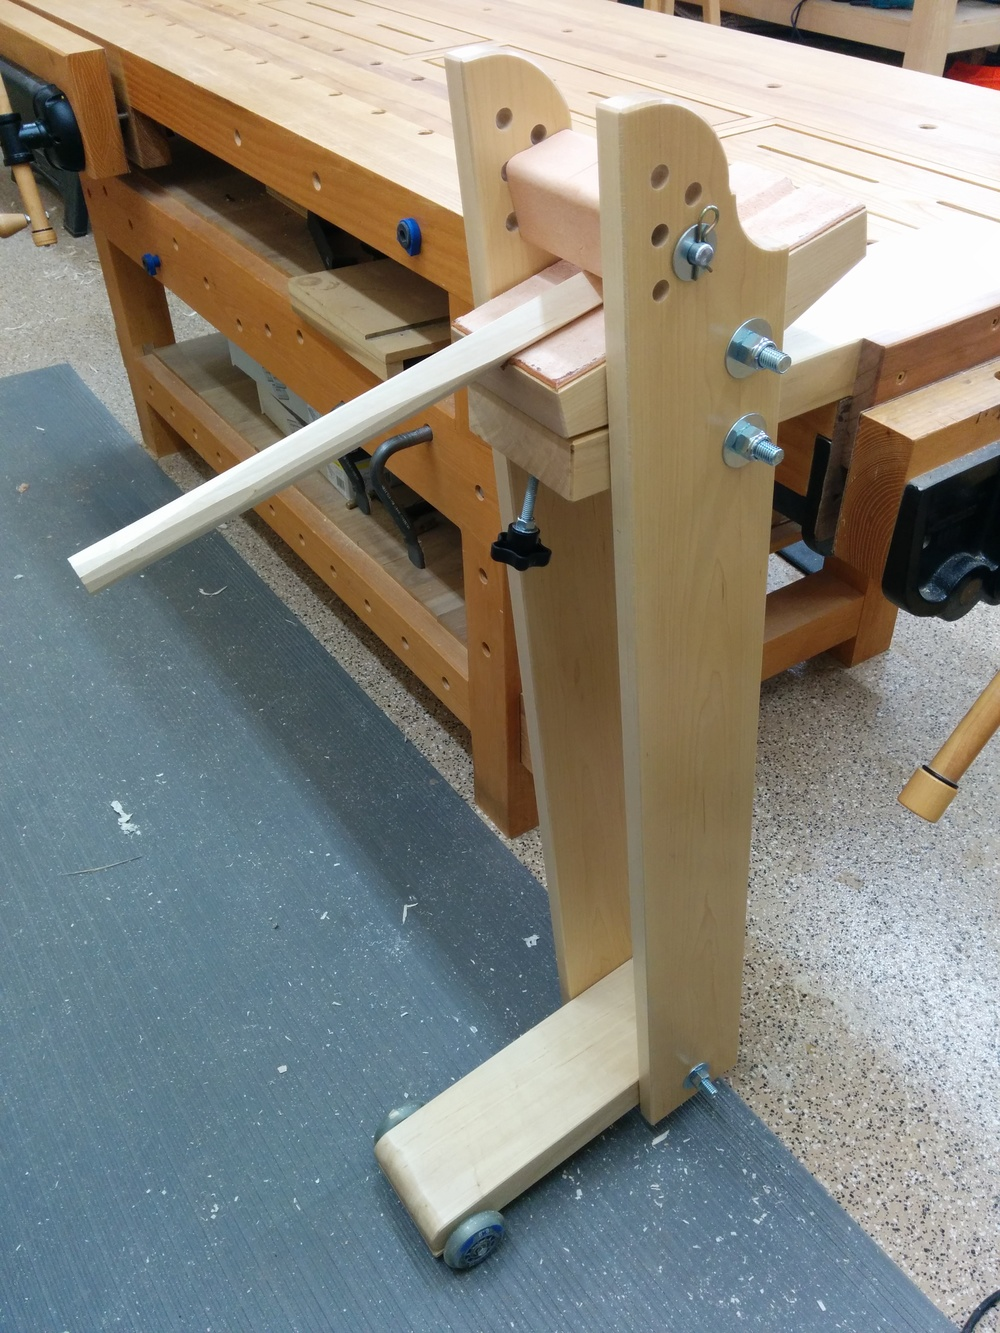 Here is the Shaving Post fully assembled. The mounting options are endless. Here it is mounted in my end vise, but with very little modification it could be mounted perpendicular to the vise or just clamped to a bench top with holdfasts.